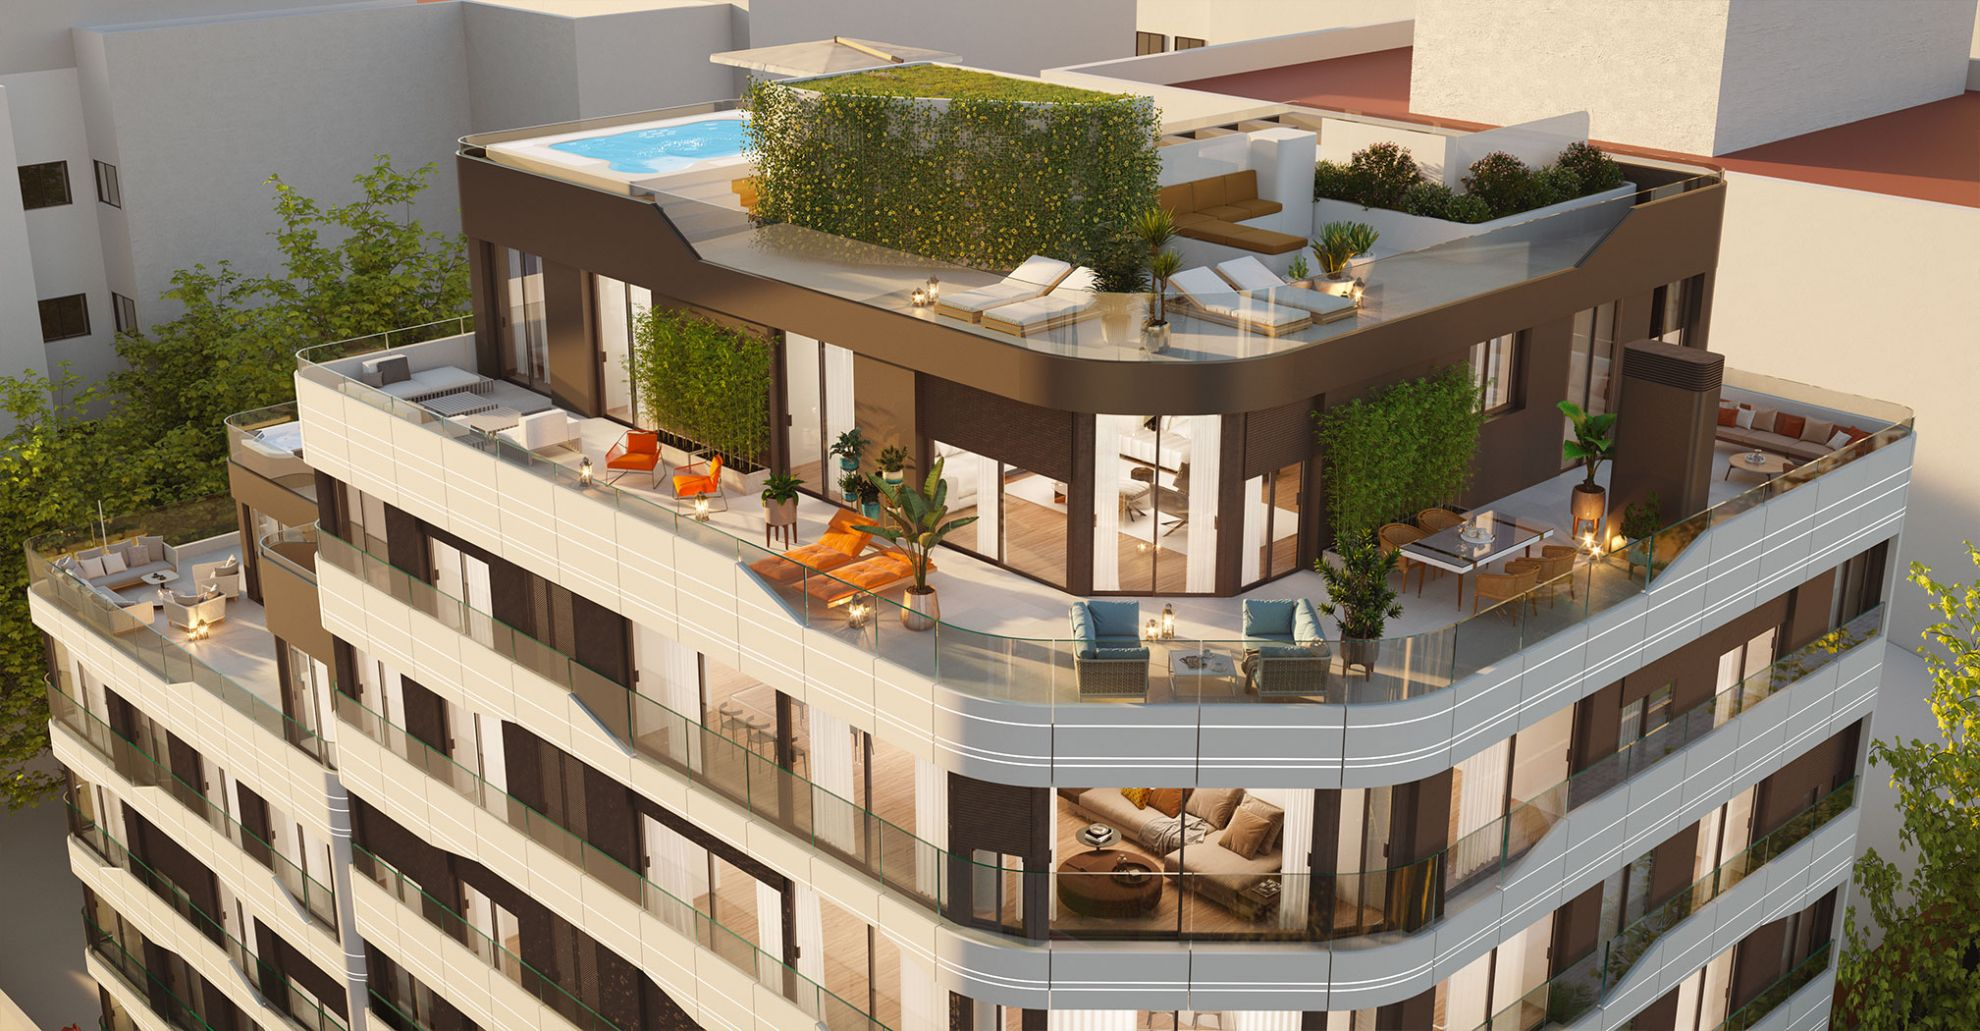 Apartments in the city of Alicante 3